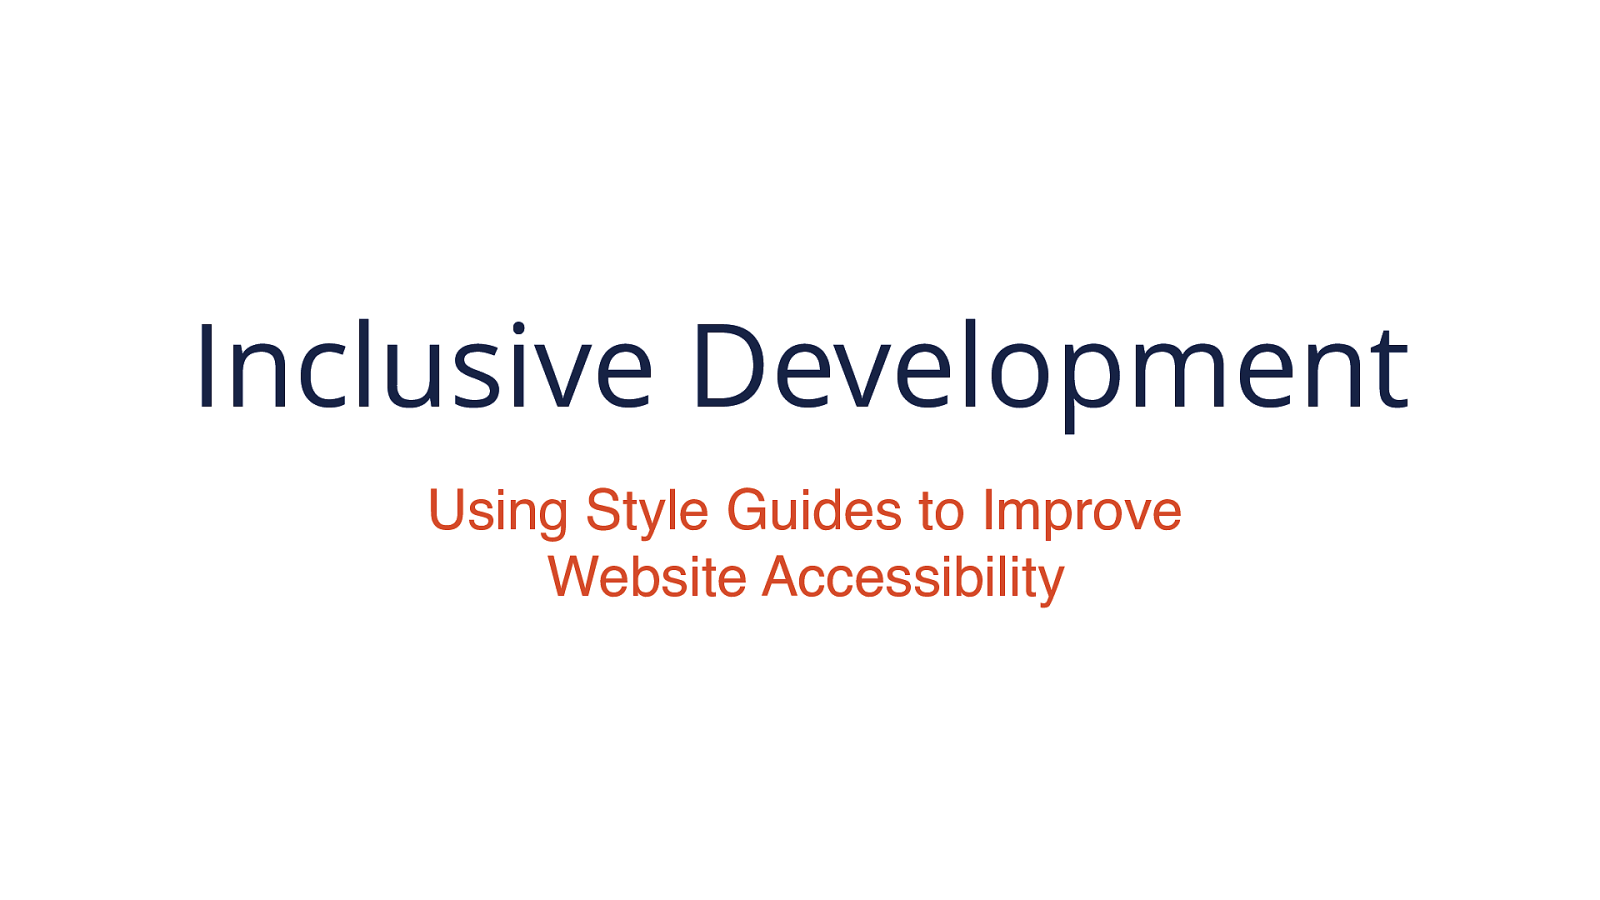 Inclusive Development Using Style Guides to Improve Website Accessibility